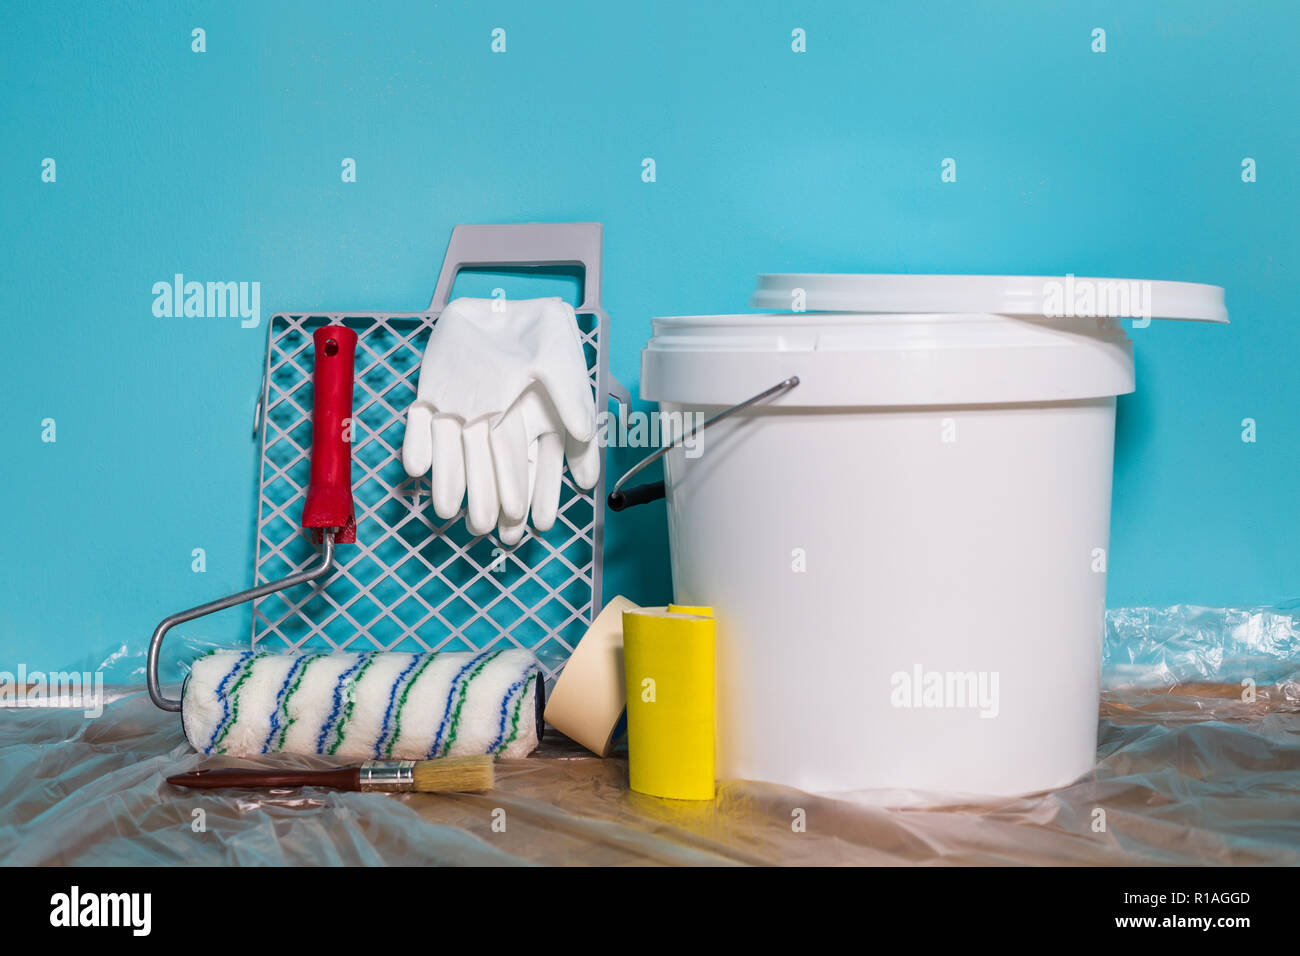 Image Of Man Holding Paint Roller And Equipment For Painting Wall